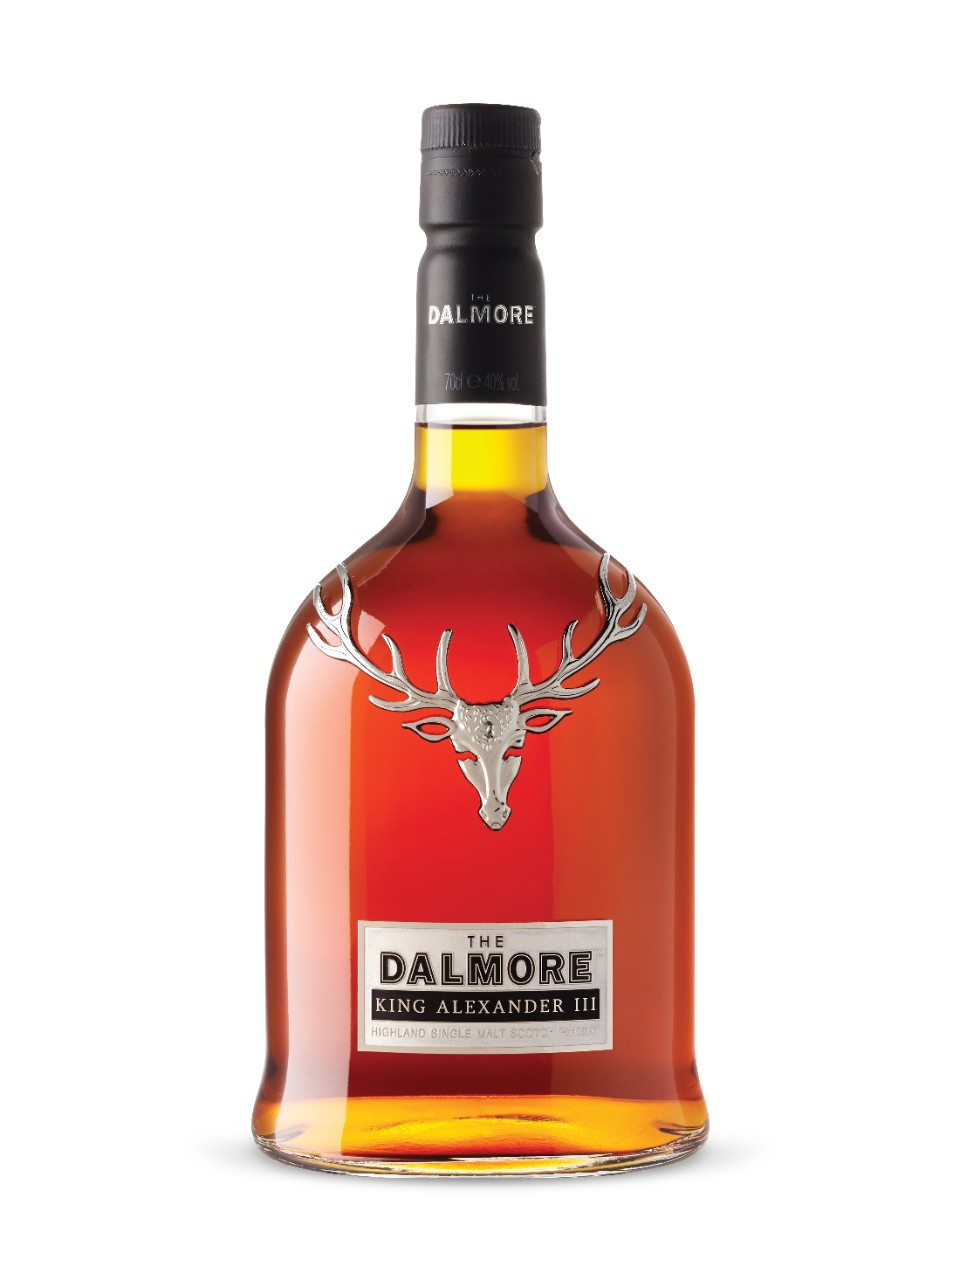 Image for Dalmore 1263 King Alexander III Highland Single Malt Scotch Whisky from LCBO